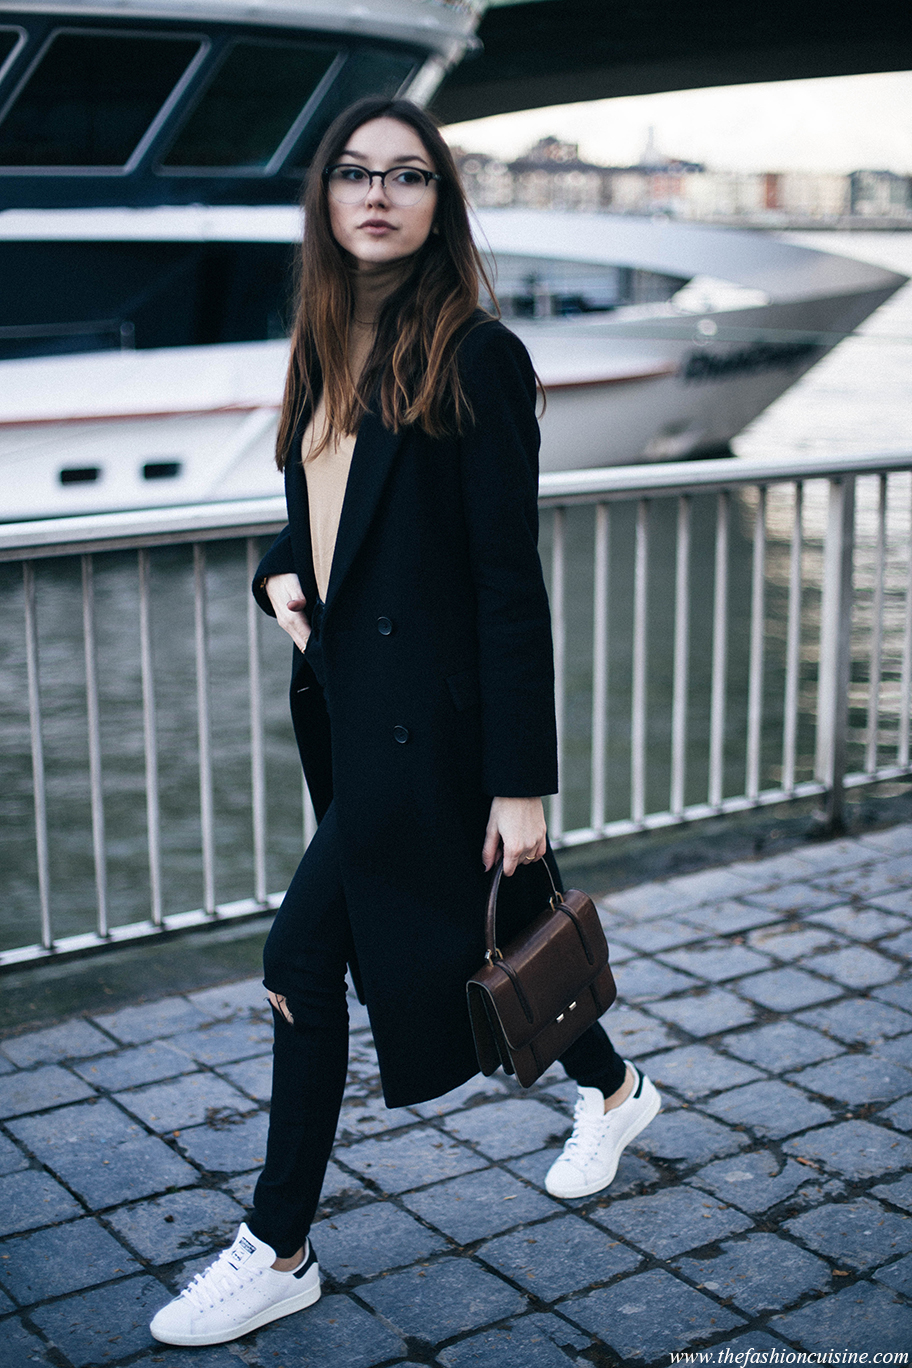 Beatrice Gutu is looking classy and sophisticated in a long black overcoat, paired with skinny distressed denim jeans and white sneakers. A miniature satchel will add the authenticity everyone wants in a winter look! Coat: Maison Scotch, Turtleneck: Zara, Jeans: Asos, Sneakers: Stan Smith.